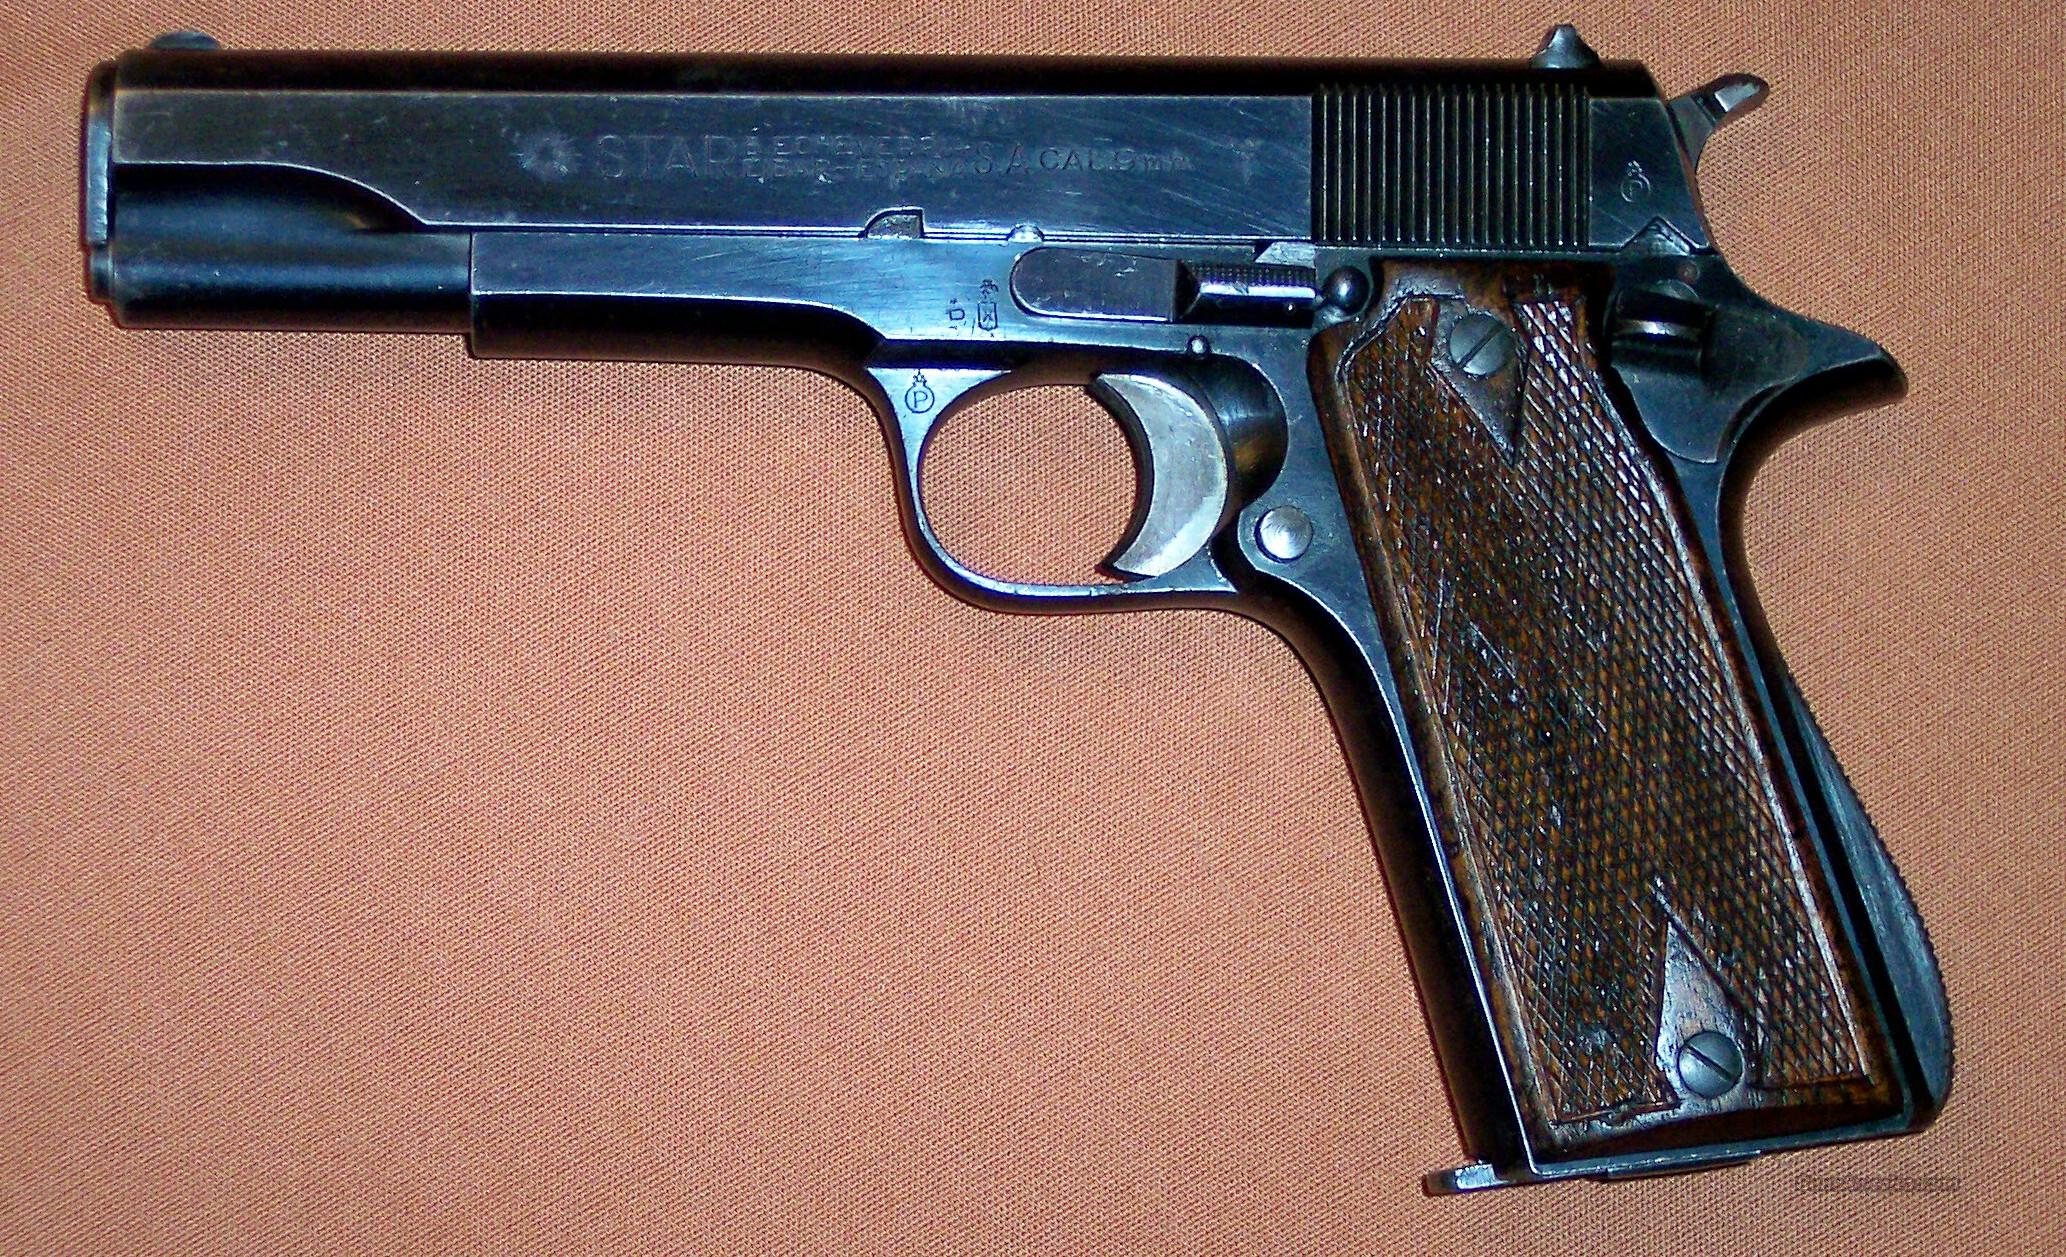 STAR Model B 9mm Made 1945  Guns > Pistols > Star Pistols